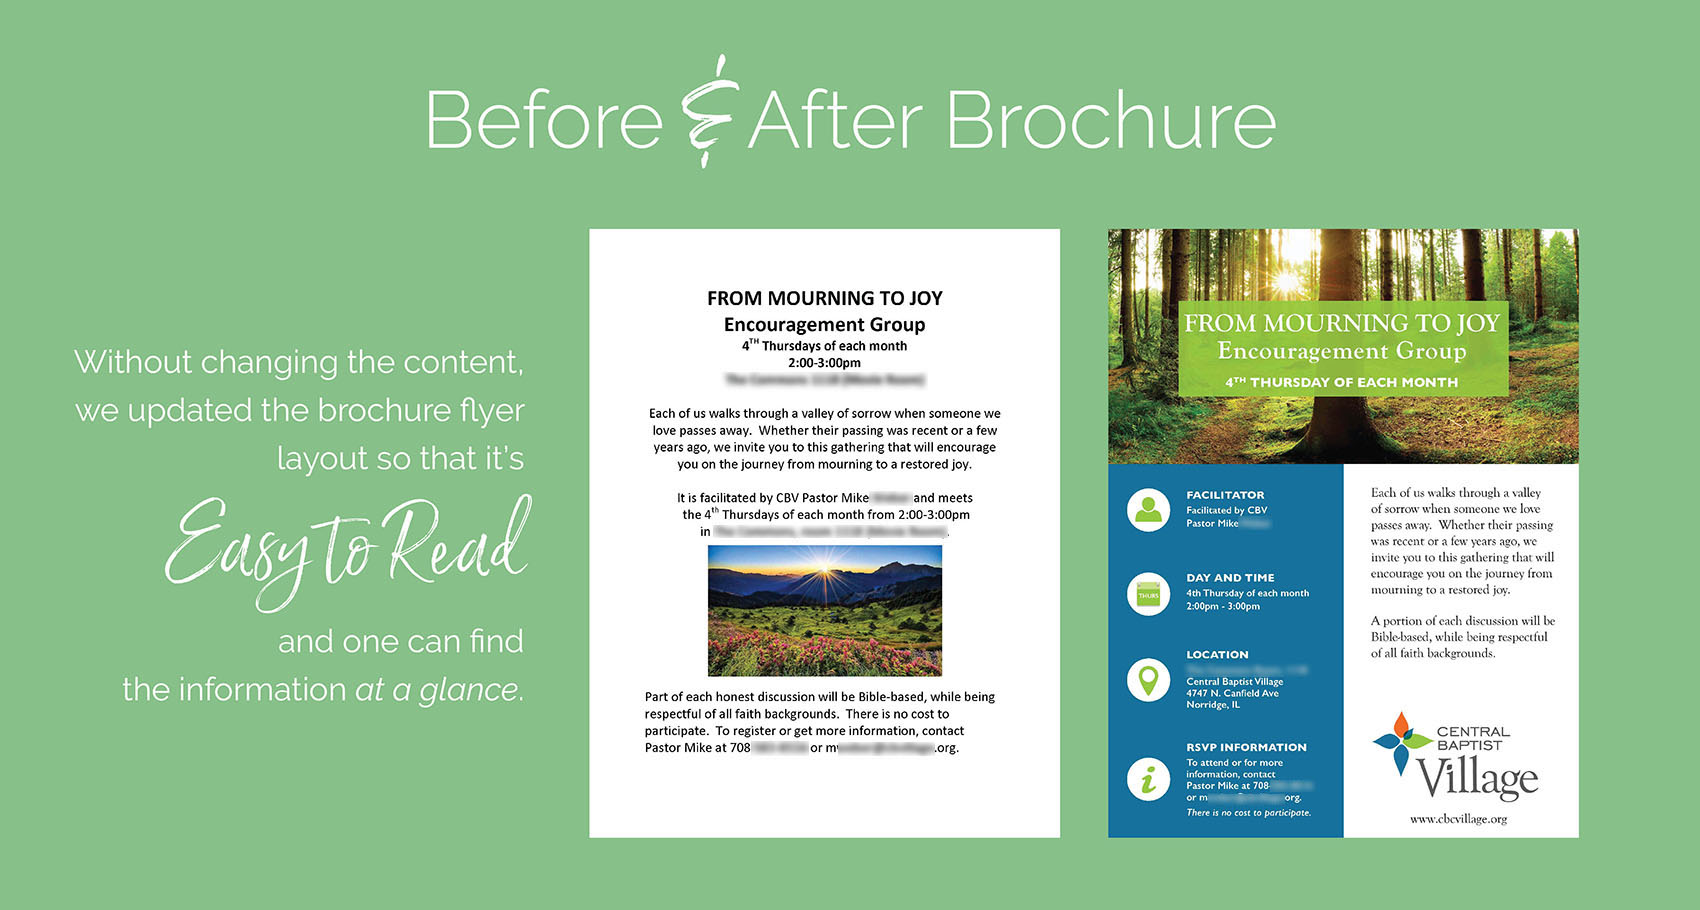 Before & After Brochure Design for Central Baptist Village